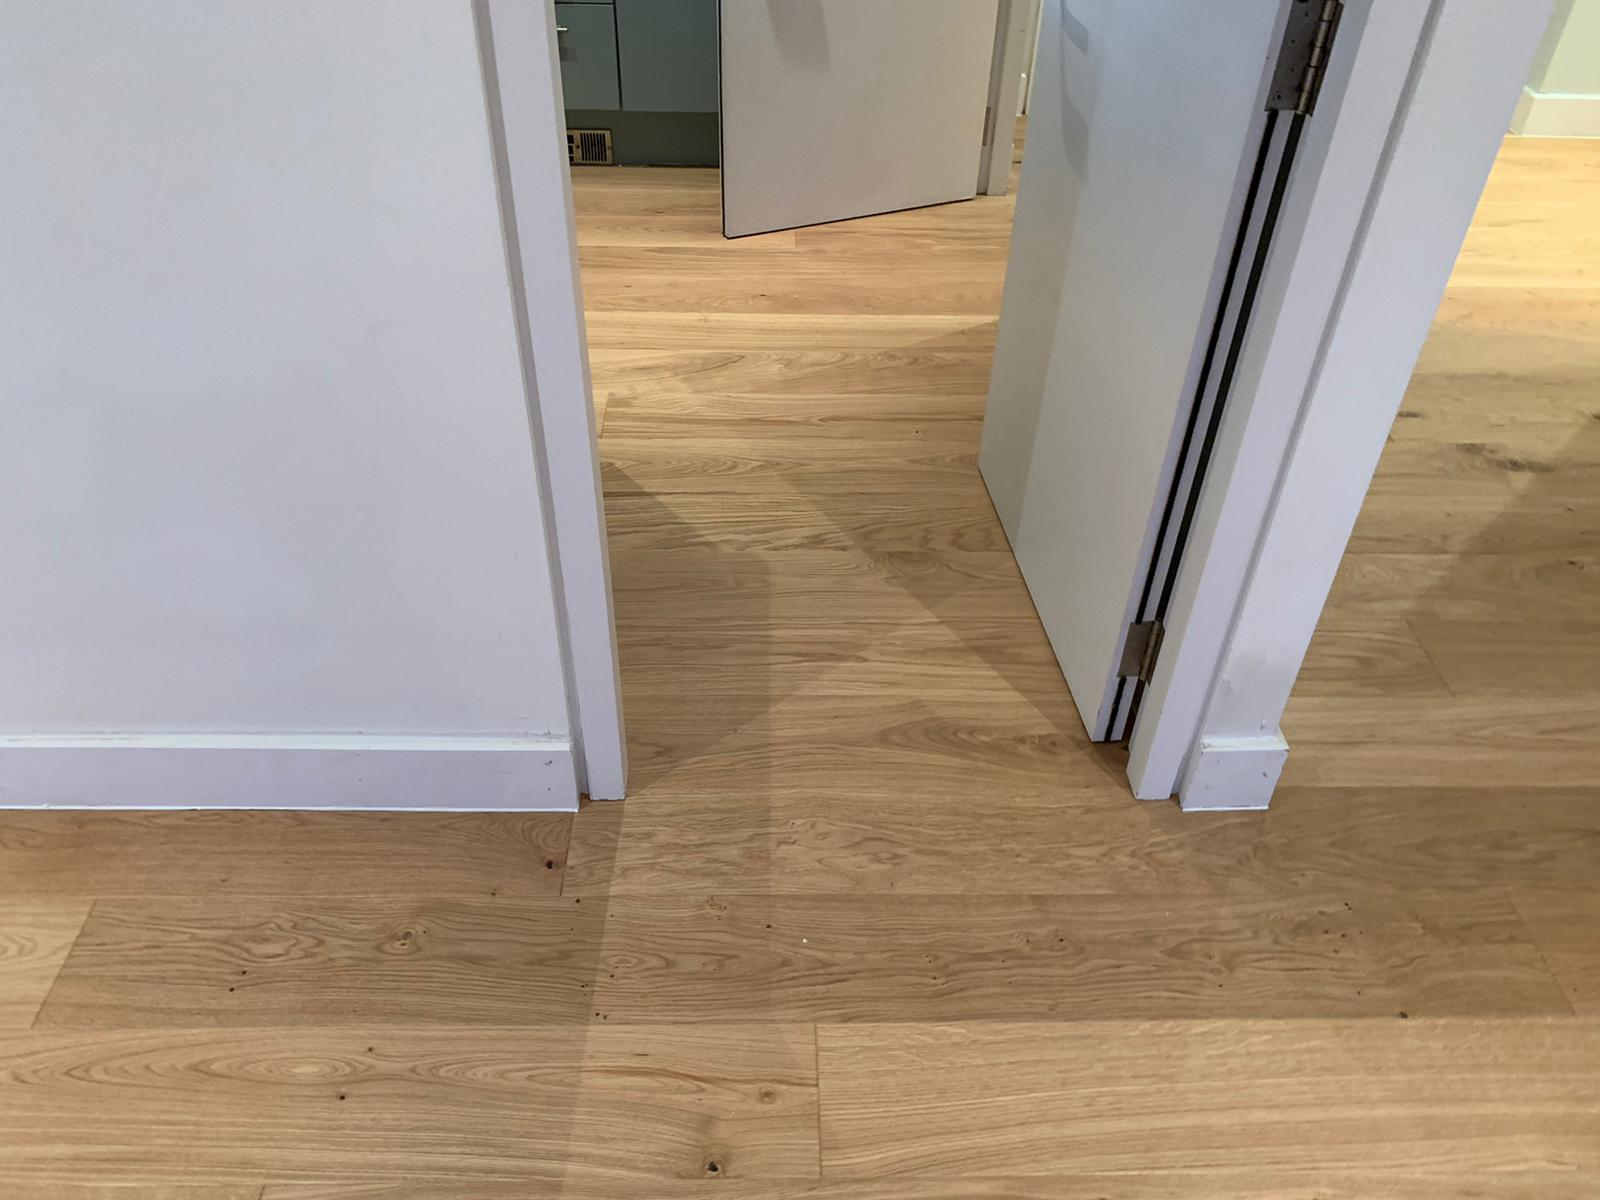 Kersaint Cobb hardwood flooring in Barnes 7